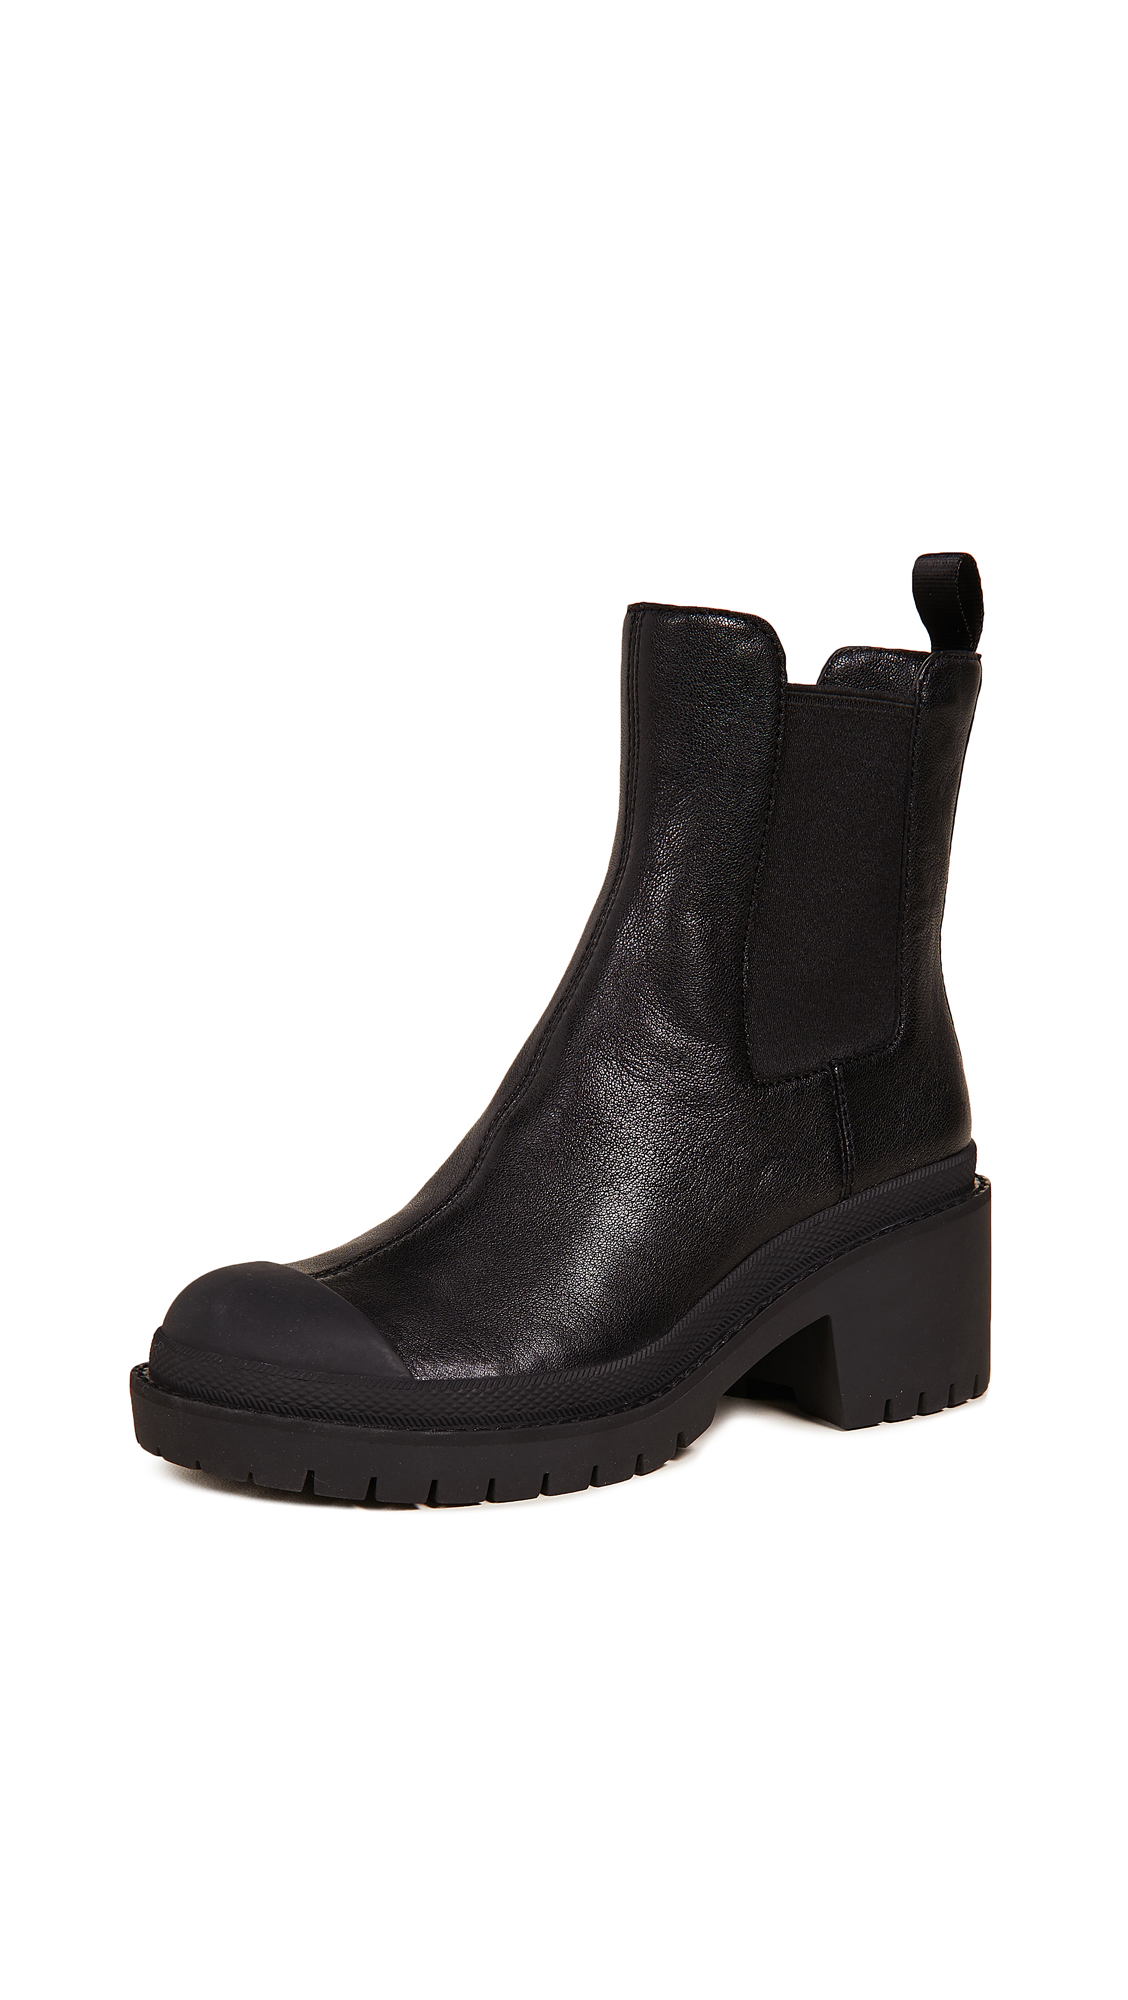 Marc Jacobs Lina Chelsea Booties - Black